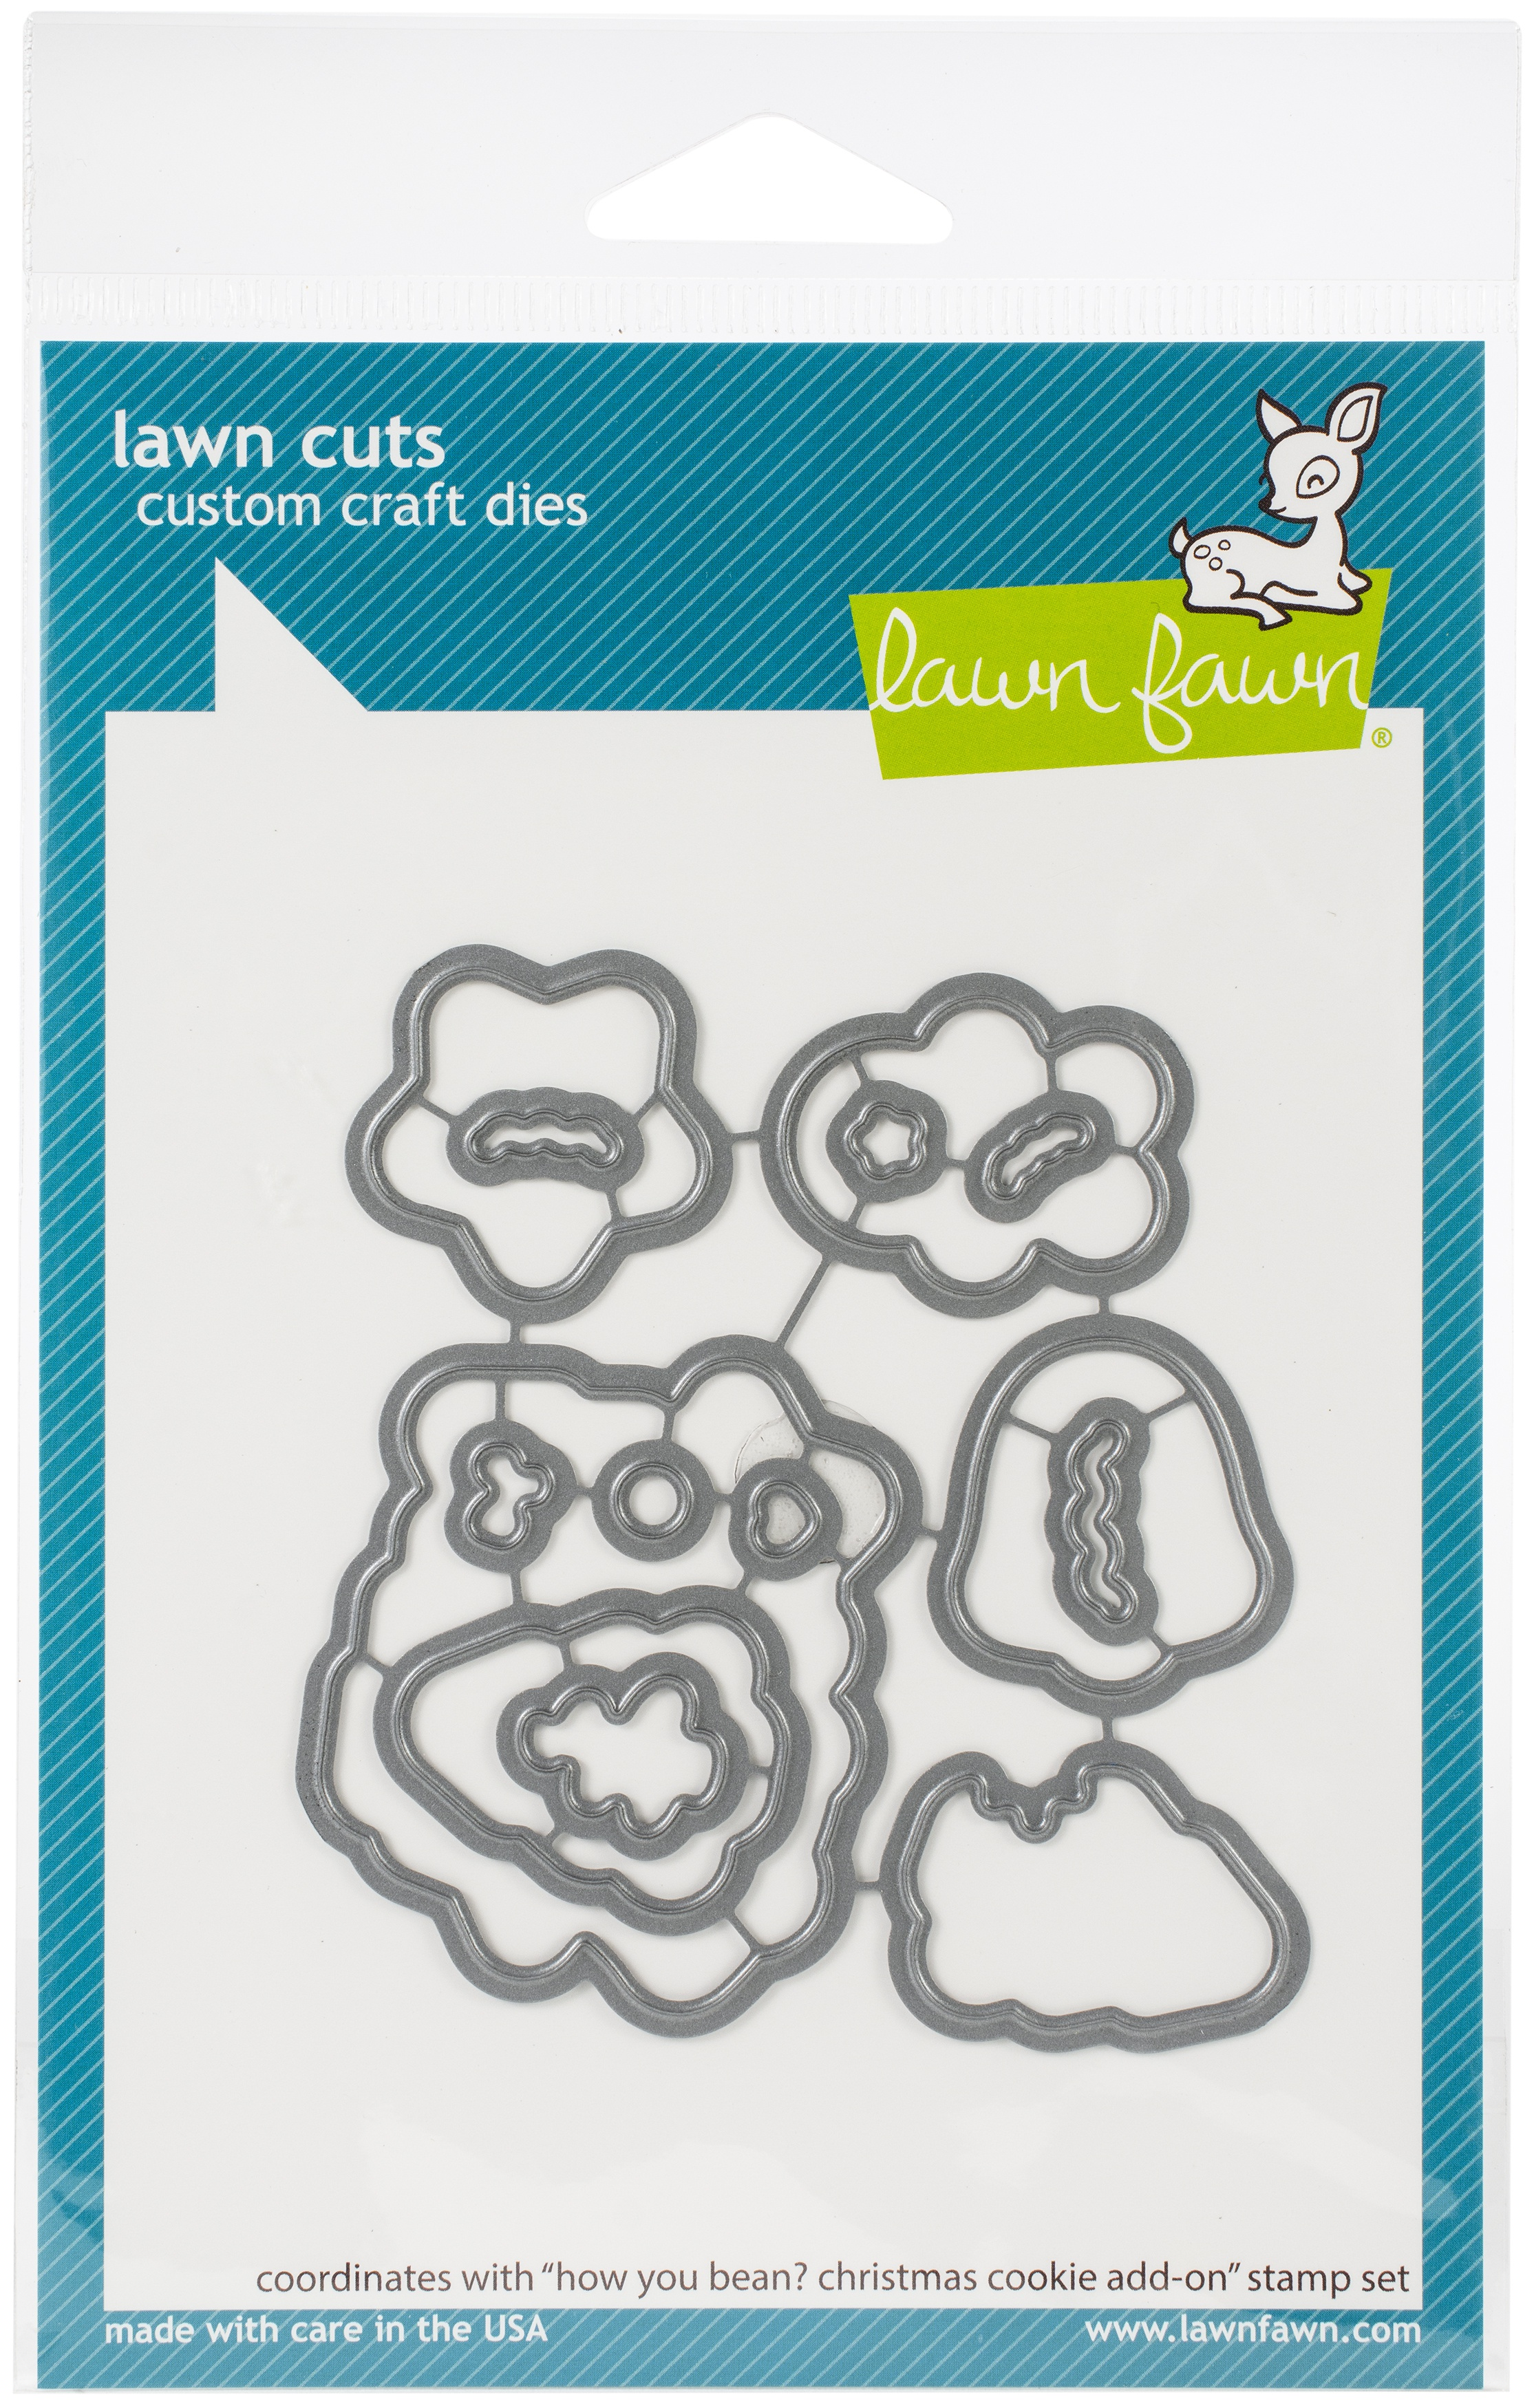 Lawn Cuts Custom Craft Die-How You Bean? Christmas Cookie Add-On